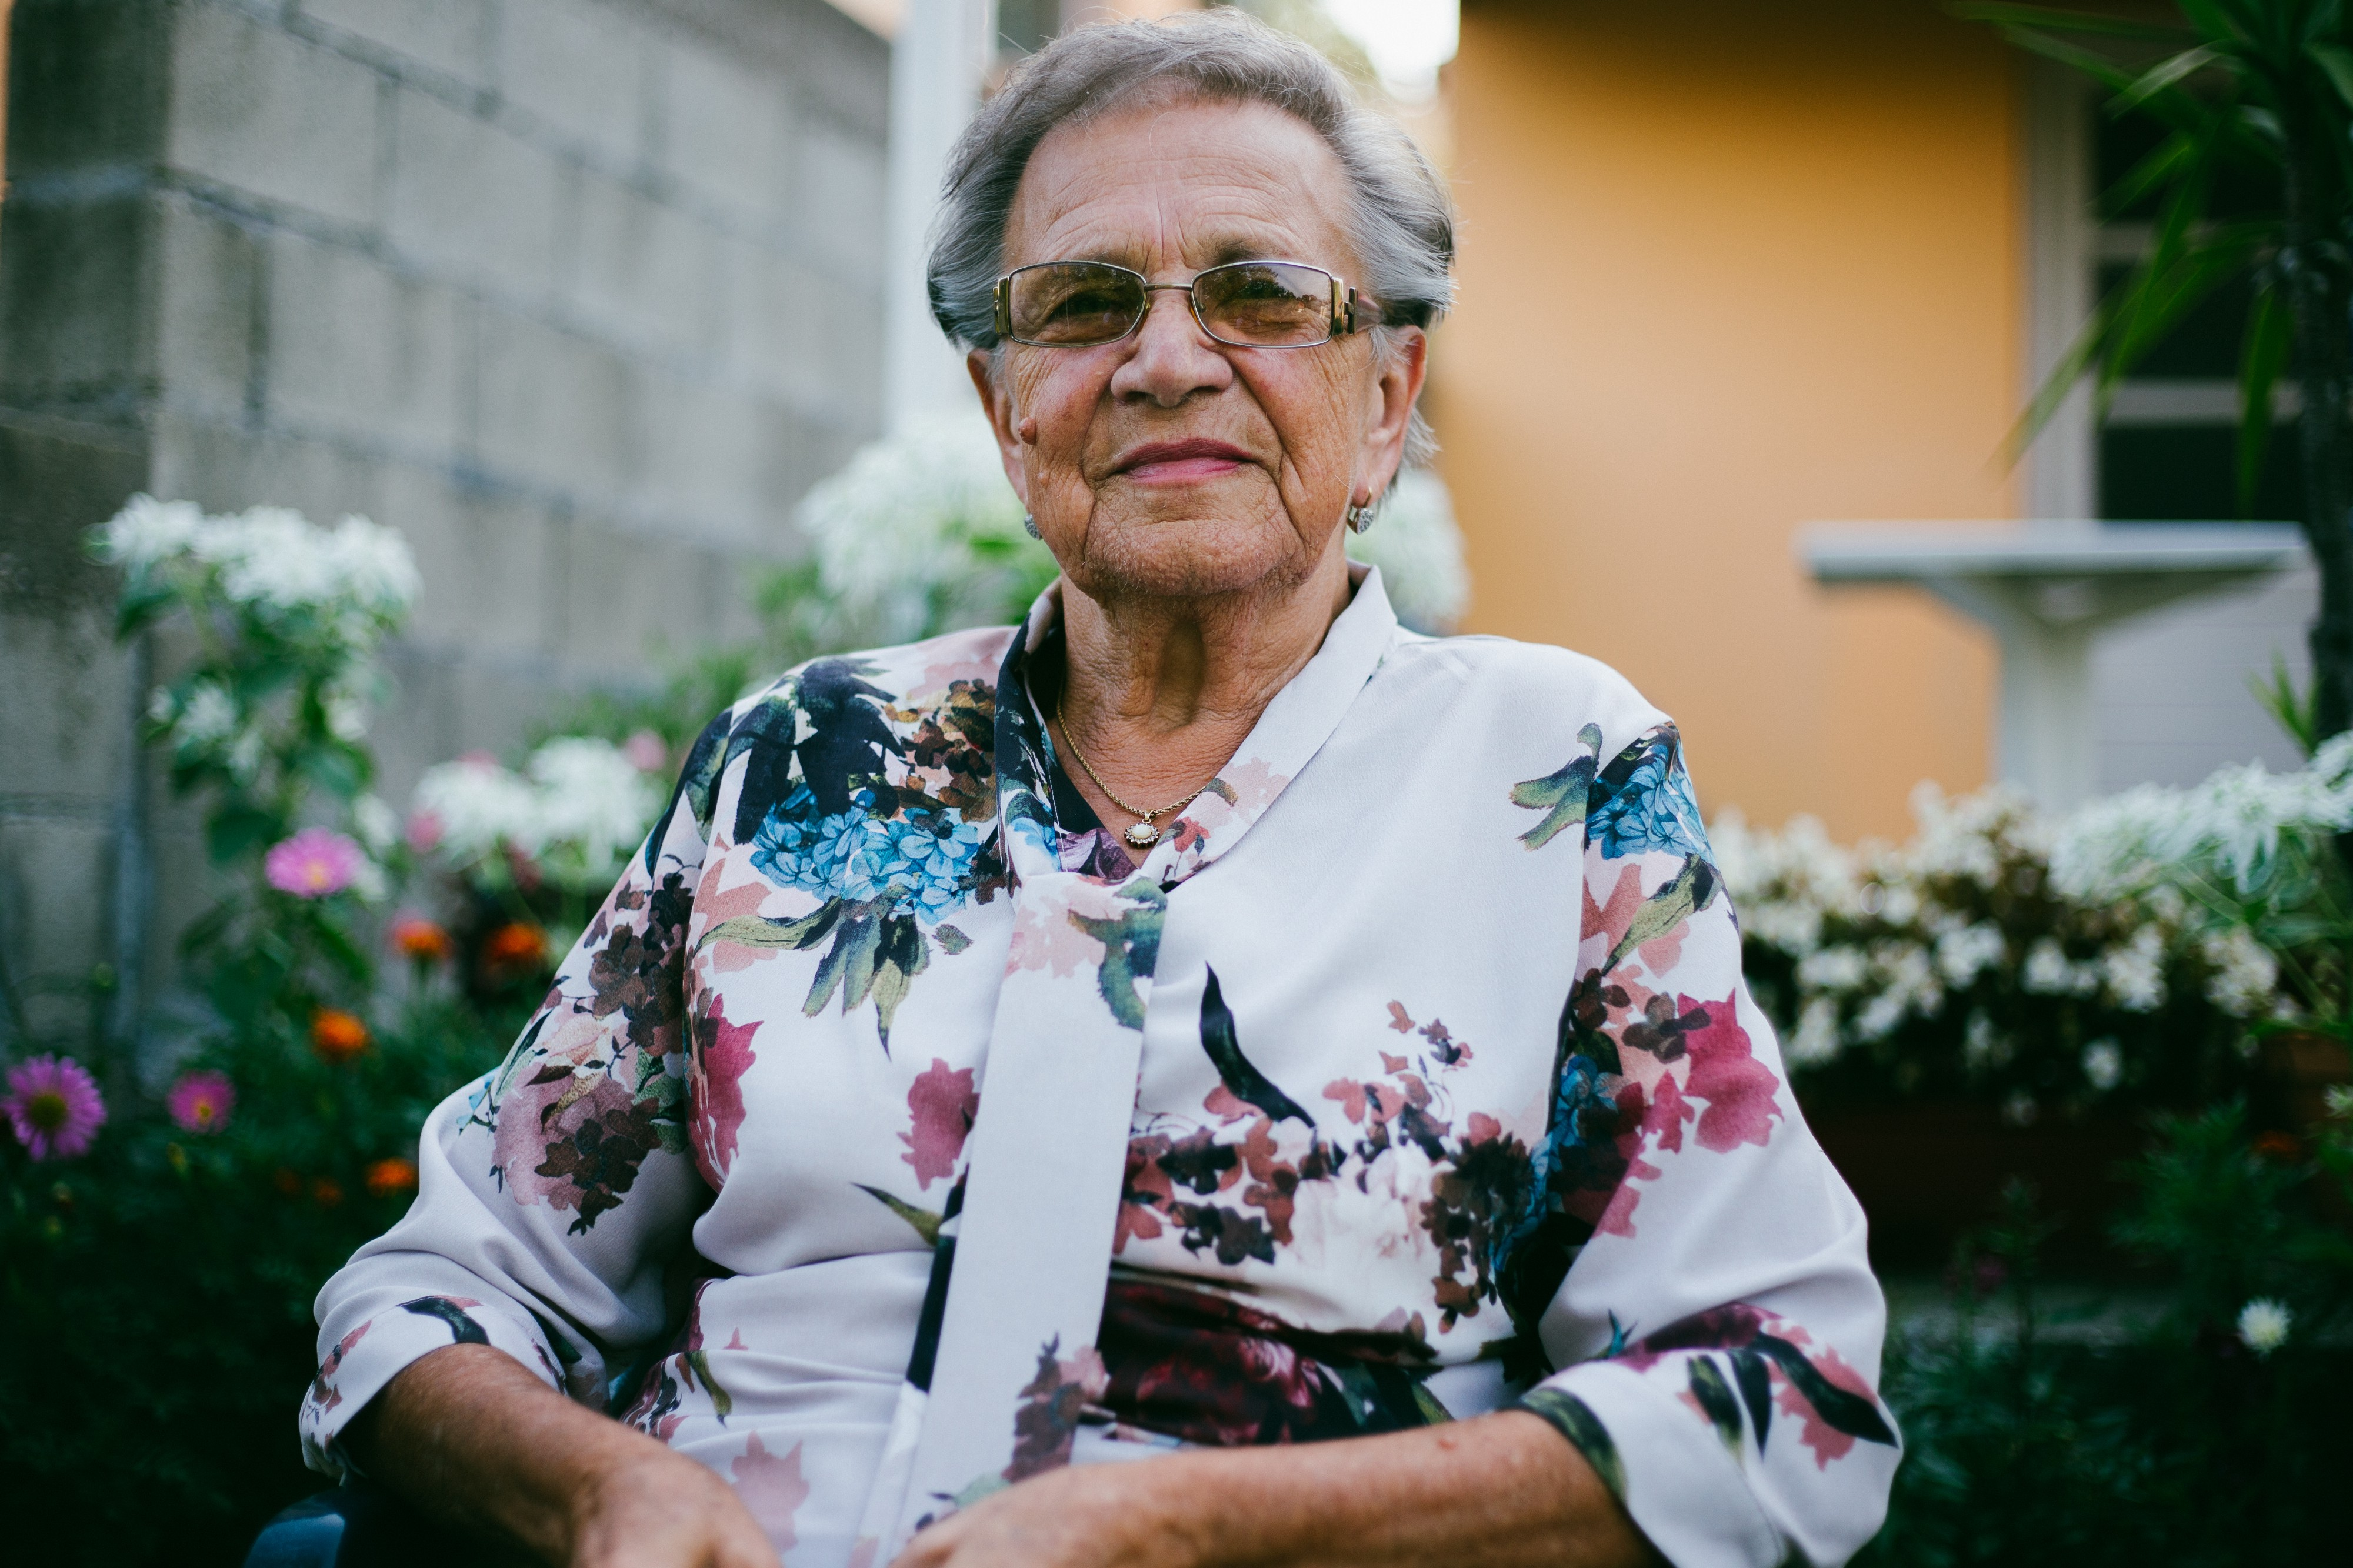 Content-looking grandma, with short hair, white blouse with flowery pattern, standing outside in a residential flower garden.